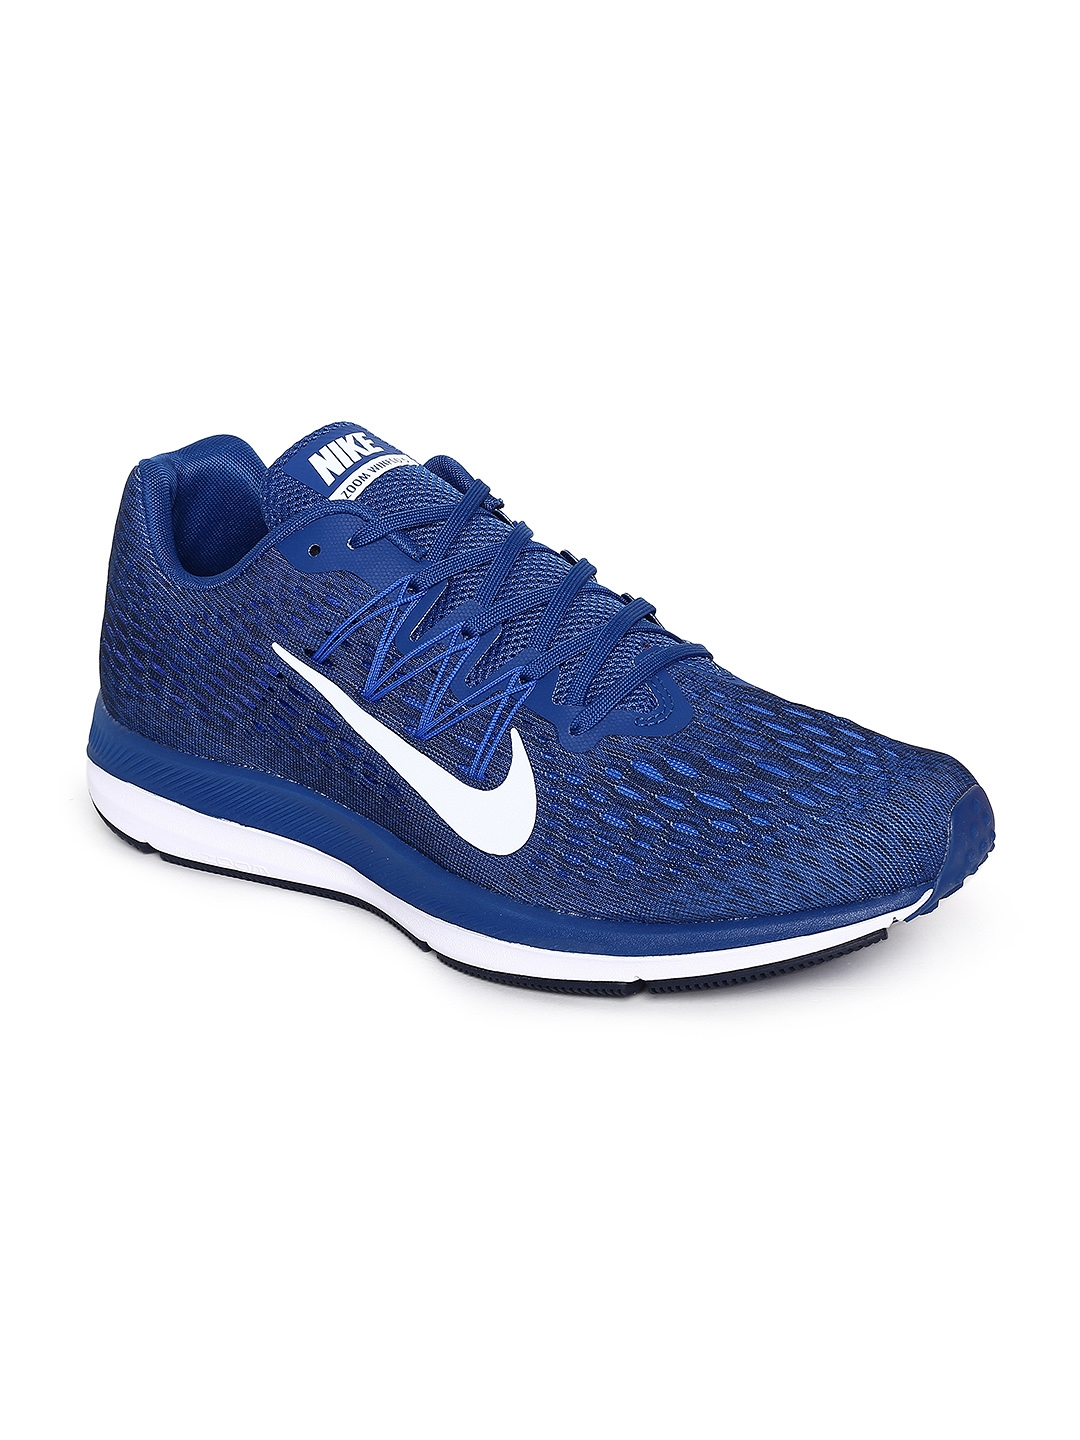 7d039c38493 Buy Nike Men Blue Air Zoom Winflo 5 Running Shoes - Sports Shoes for ...